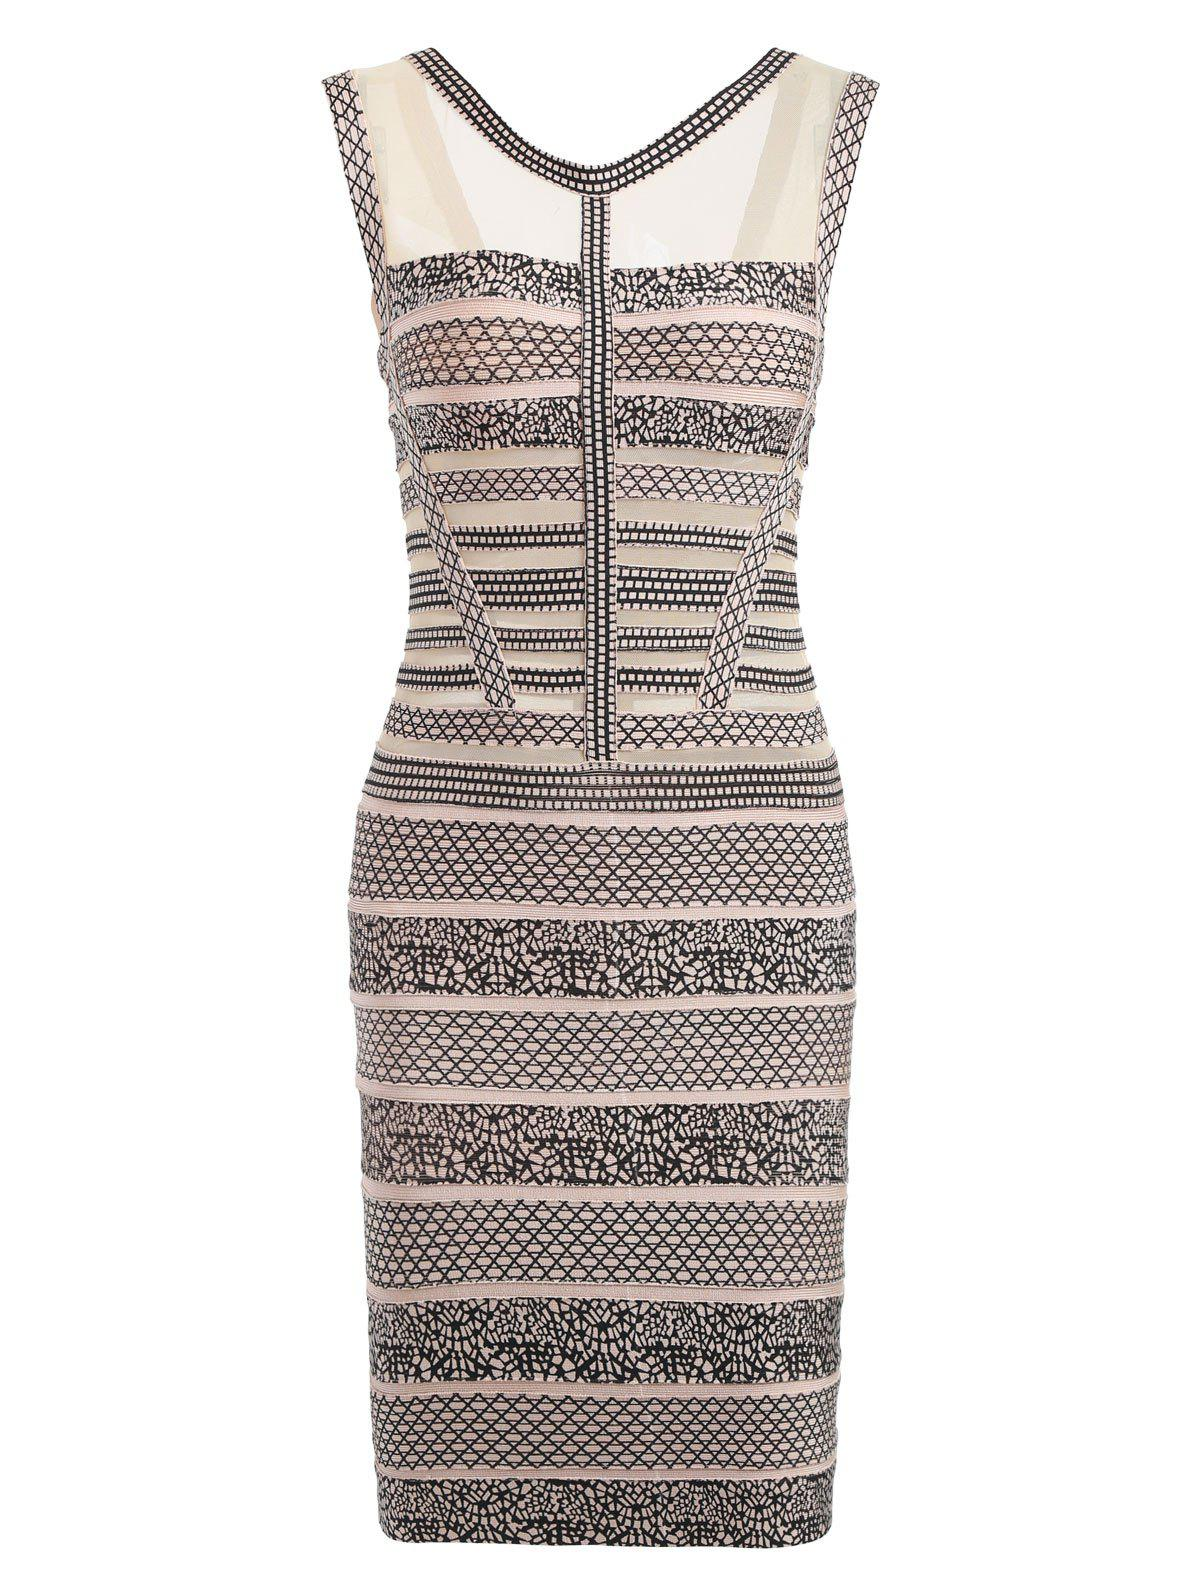 Mesh Insert Sleeveless Print Bandage Dress - BEIGE L